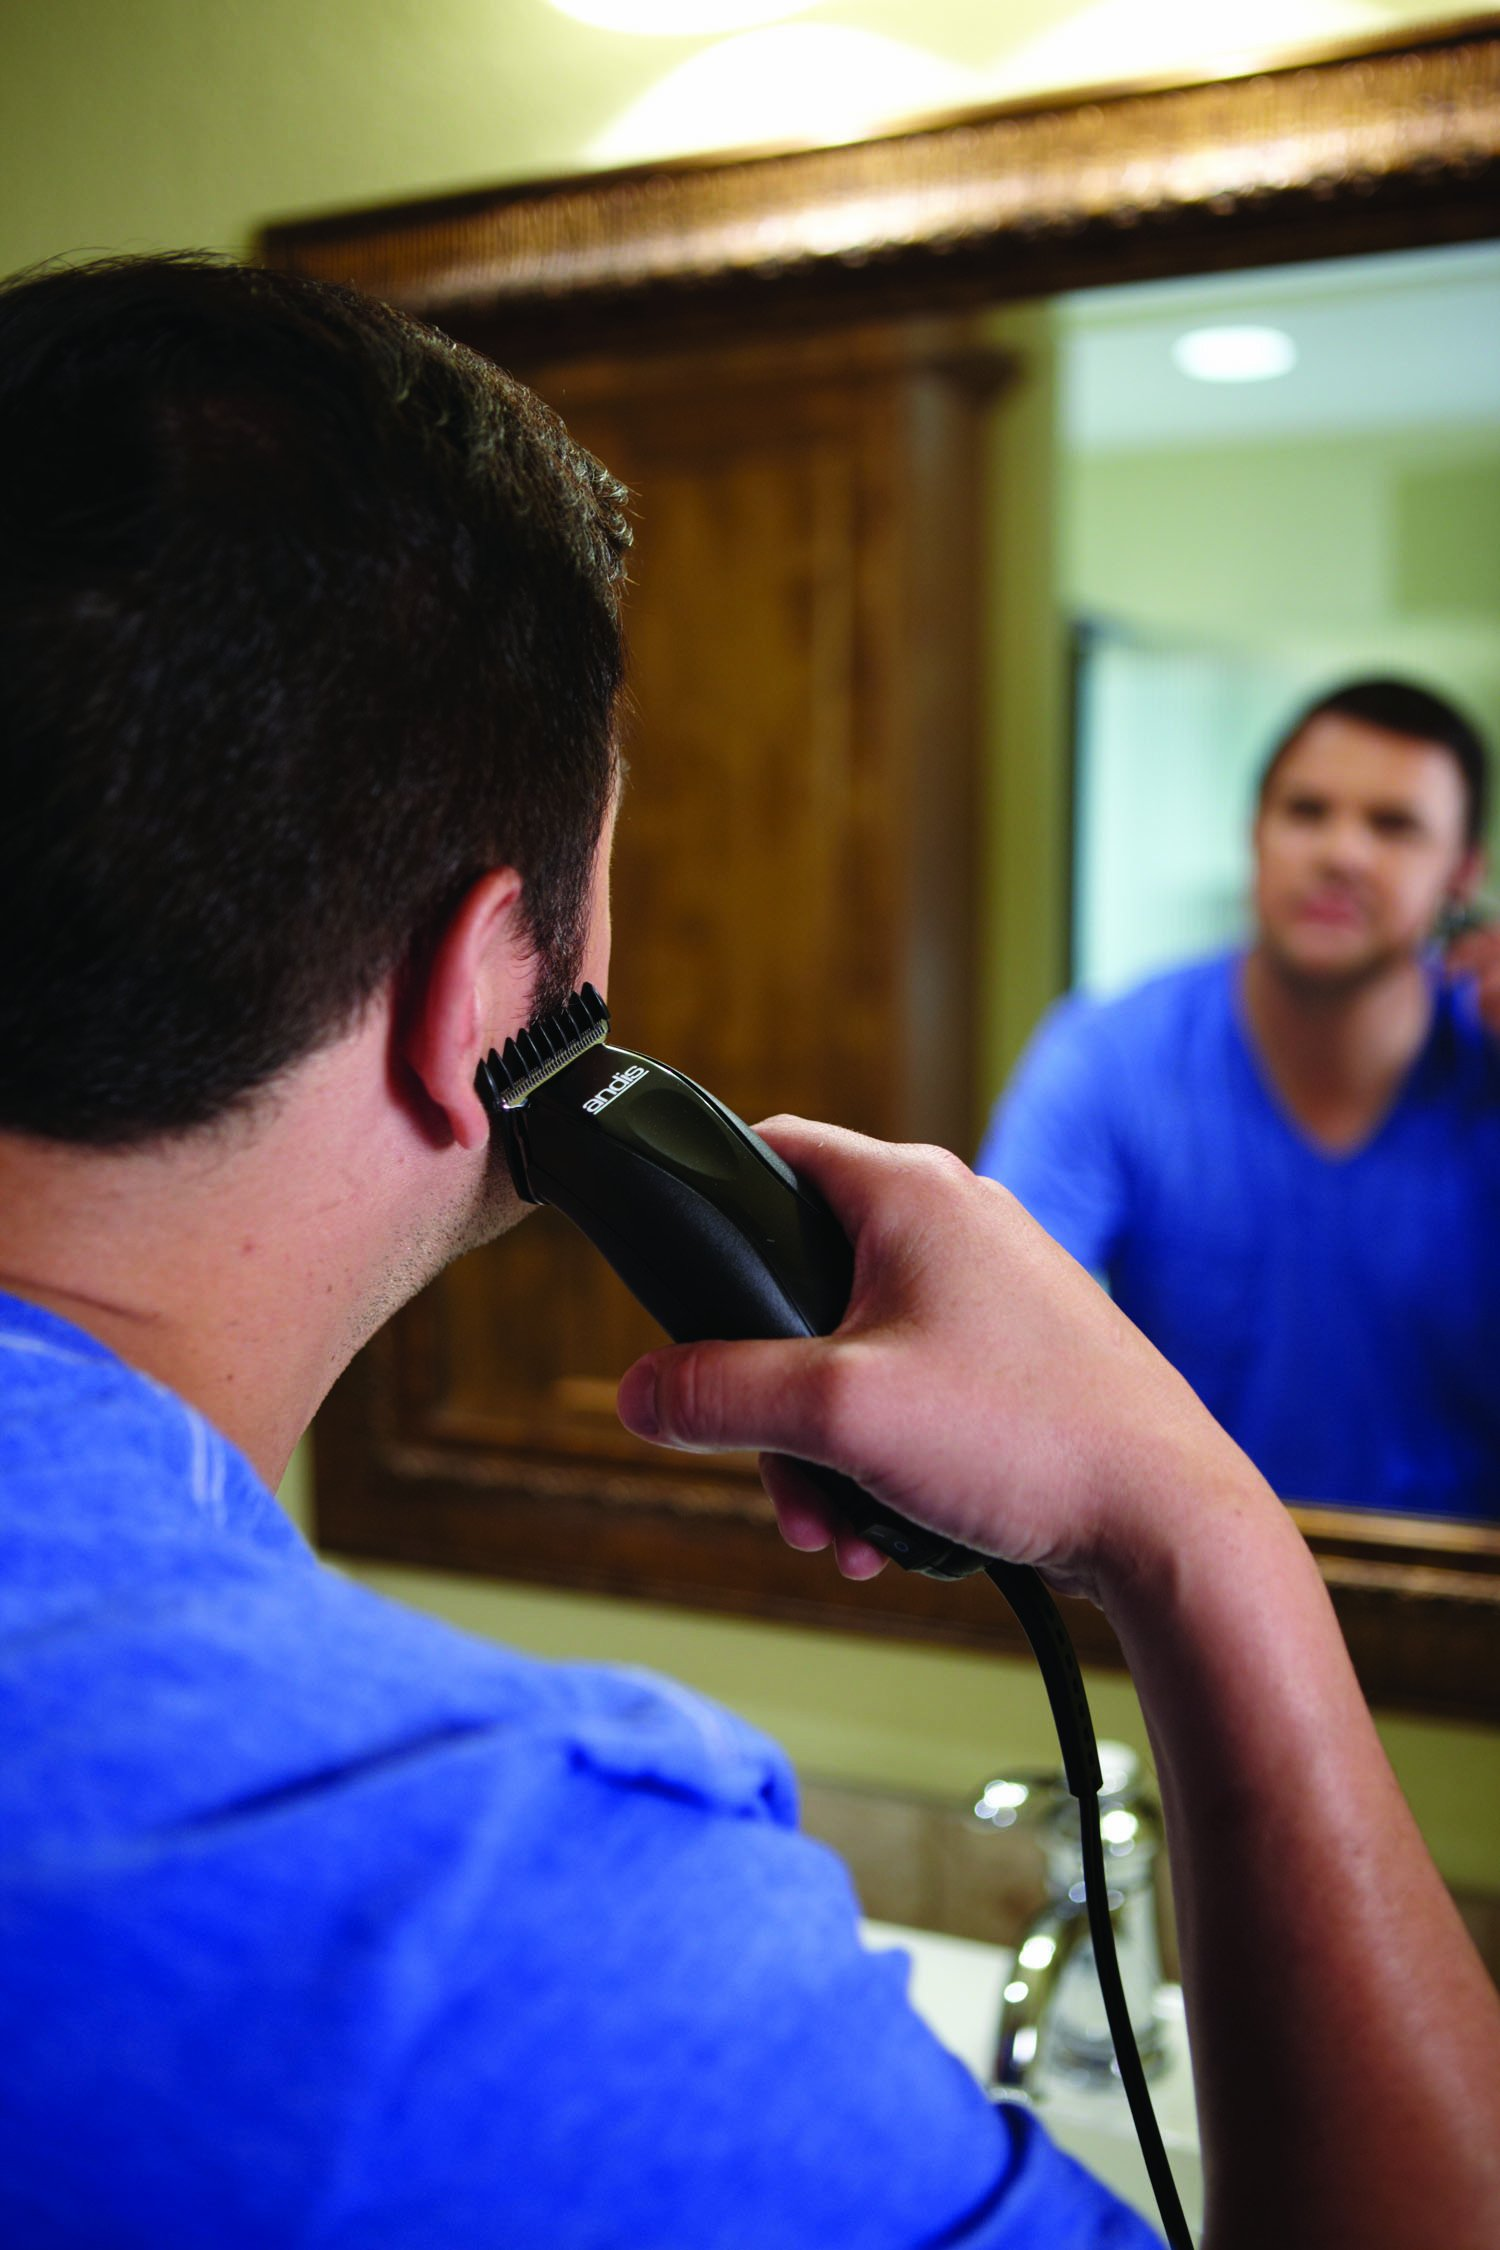 Andis Skin-Close Headliner 11-Piece Hair Clipper/Beard Trimmer Kit, Black, Model LS-2 (29775) by Andis (Image #6)